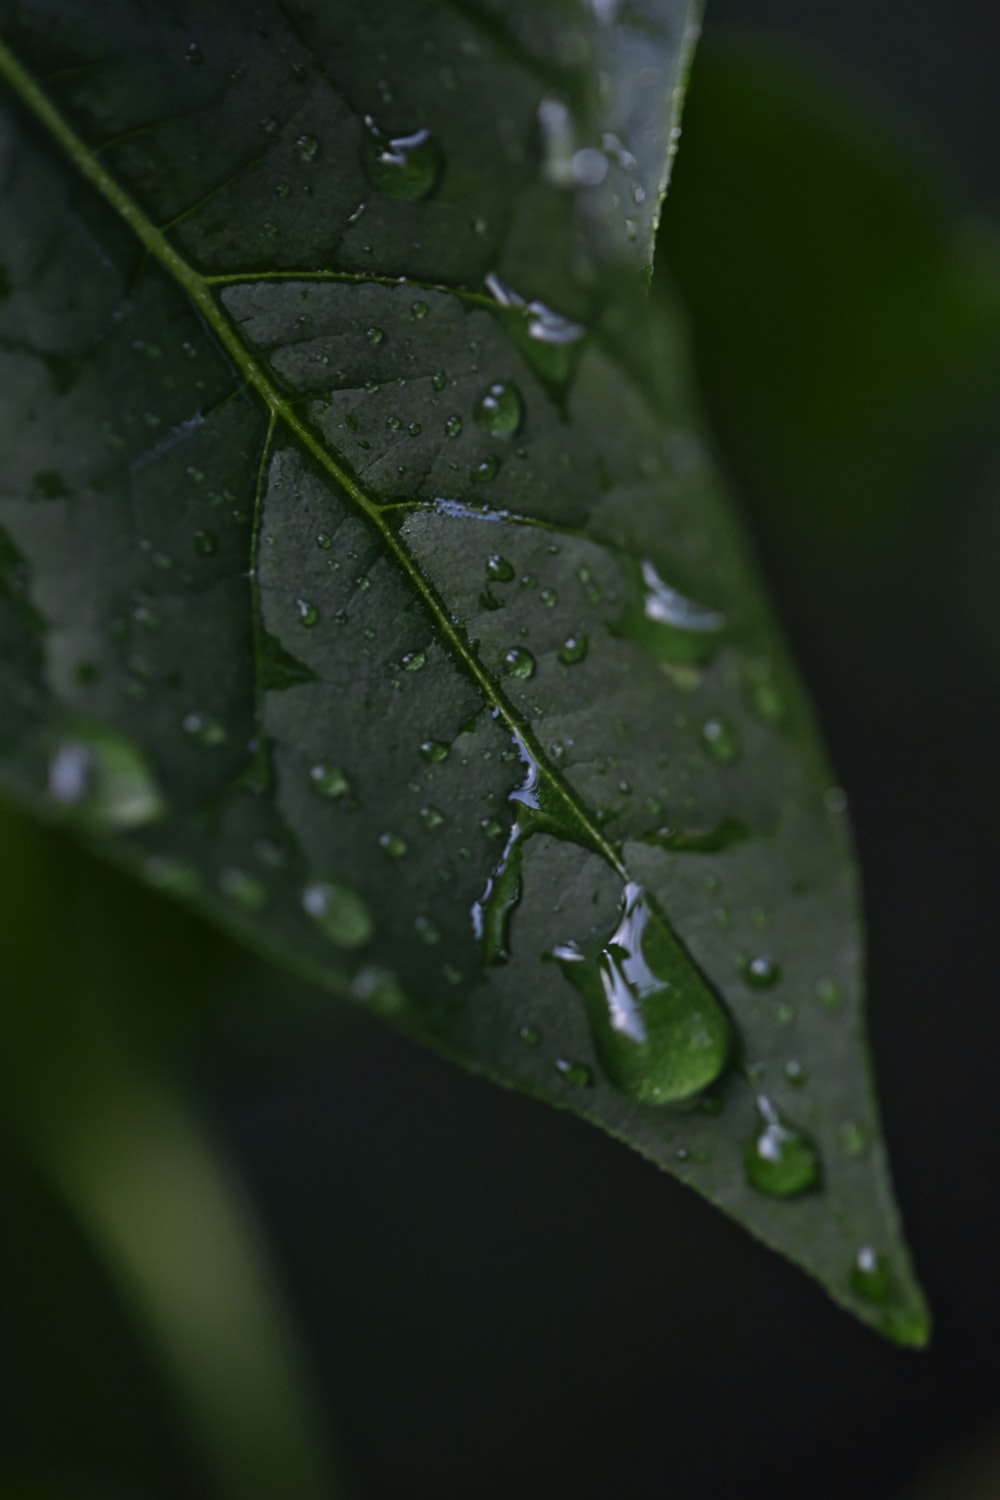 green leaf with water drop close-up photography